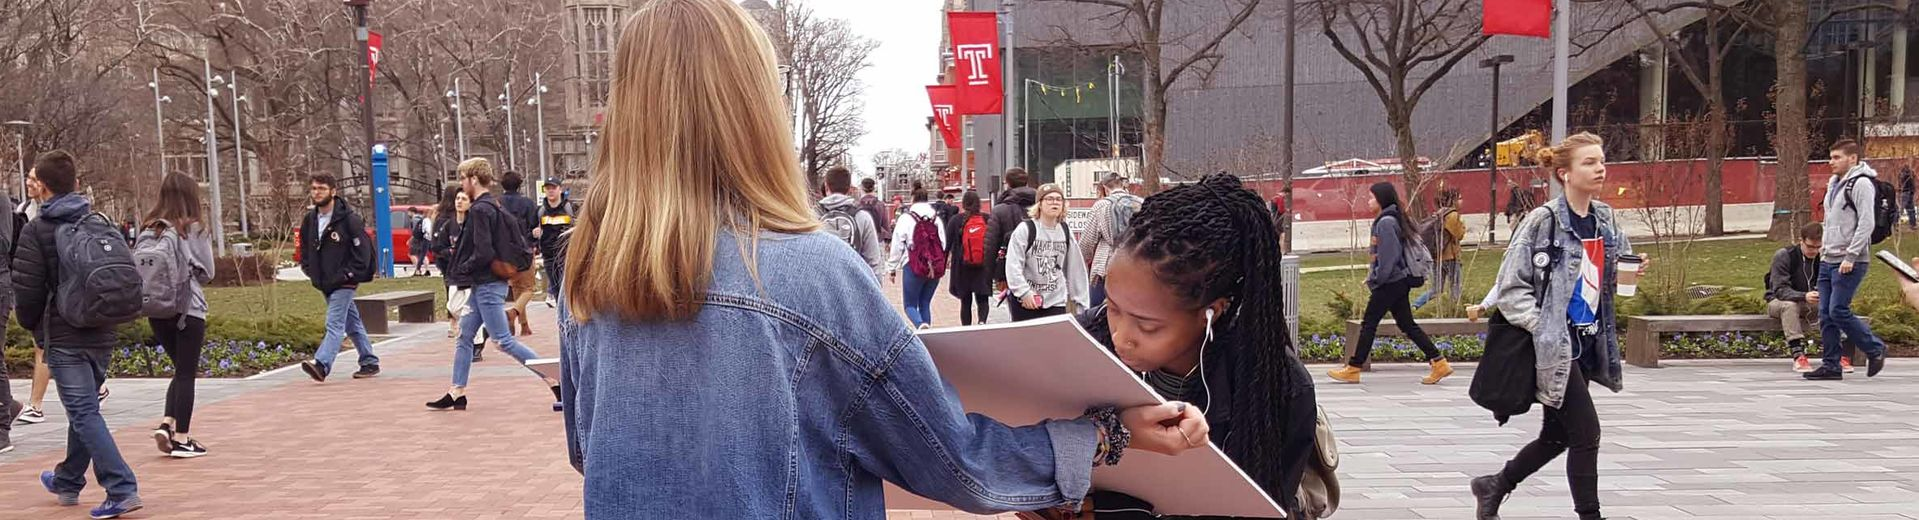 a student signs a poster held by another while others walk past